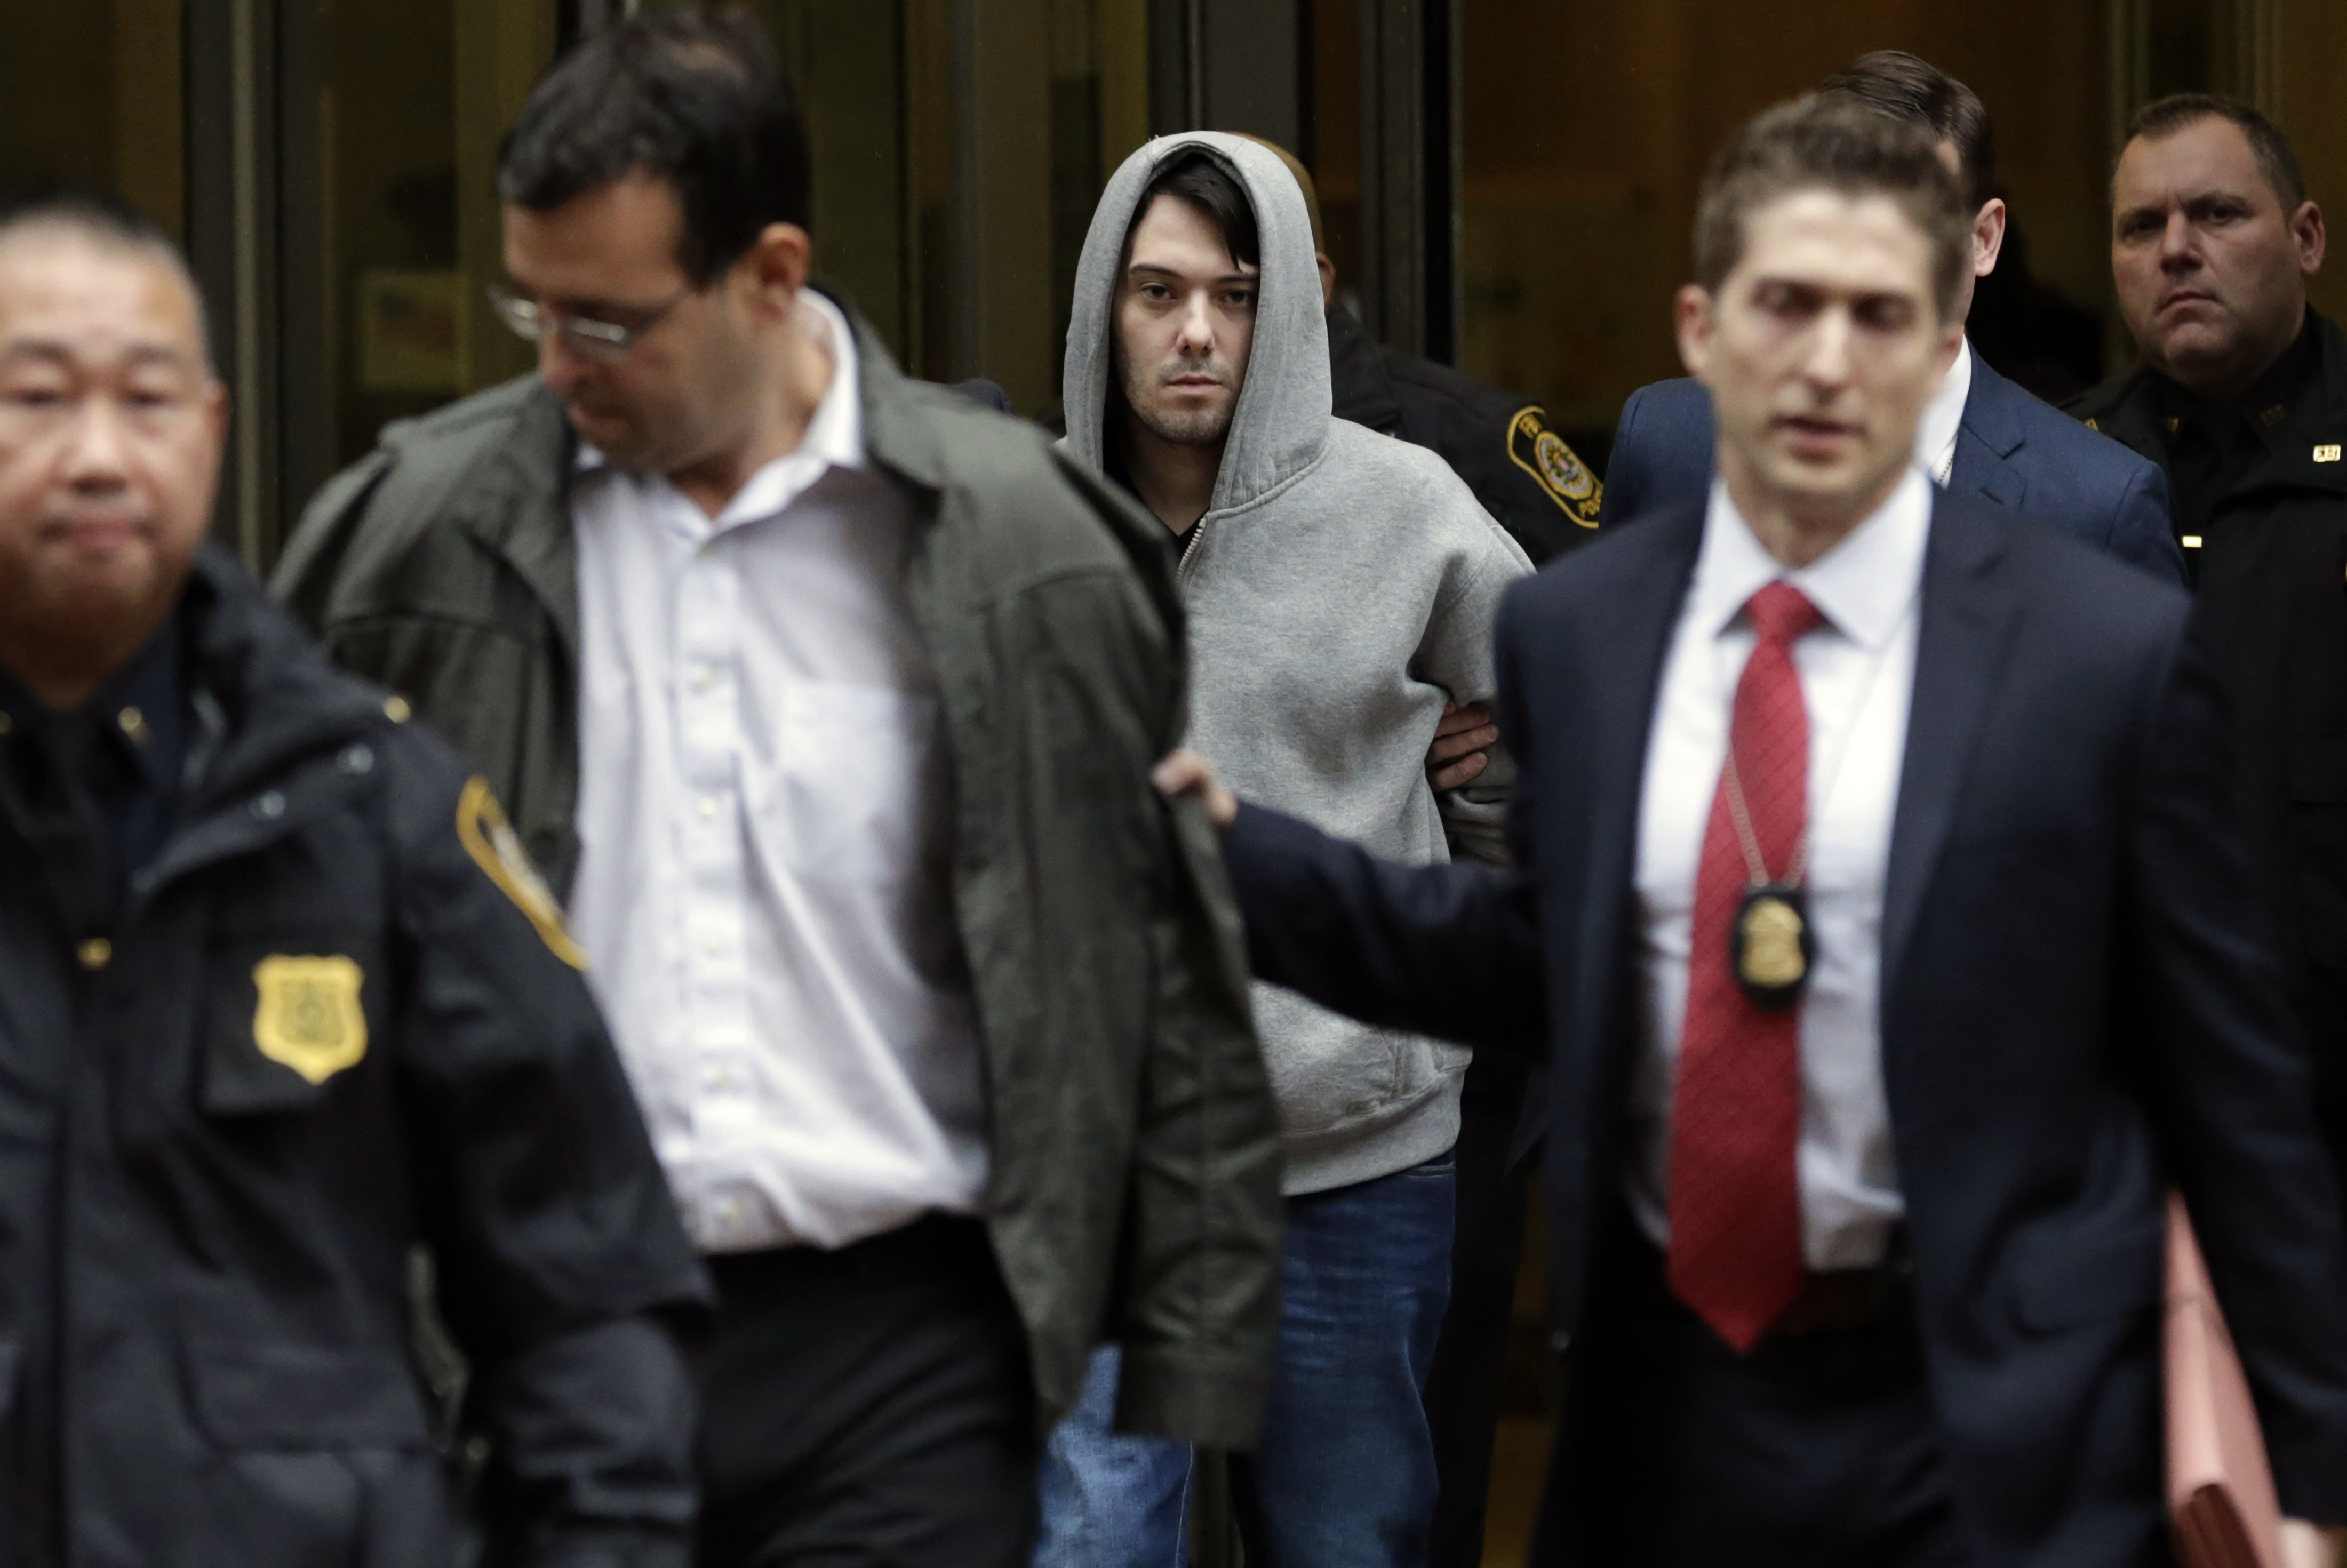 Martin Shkreli, chief executive officer of Turing Pharmaceuticals LLC, center, and attorney Evan Greebel, left, exit federal court in New York, U.S., on Thursday, Dec. 17, 2015.